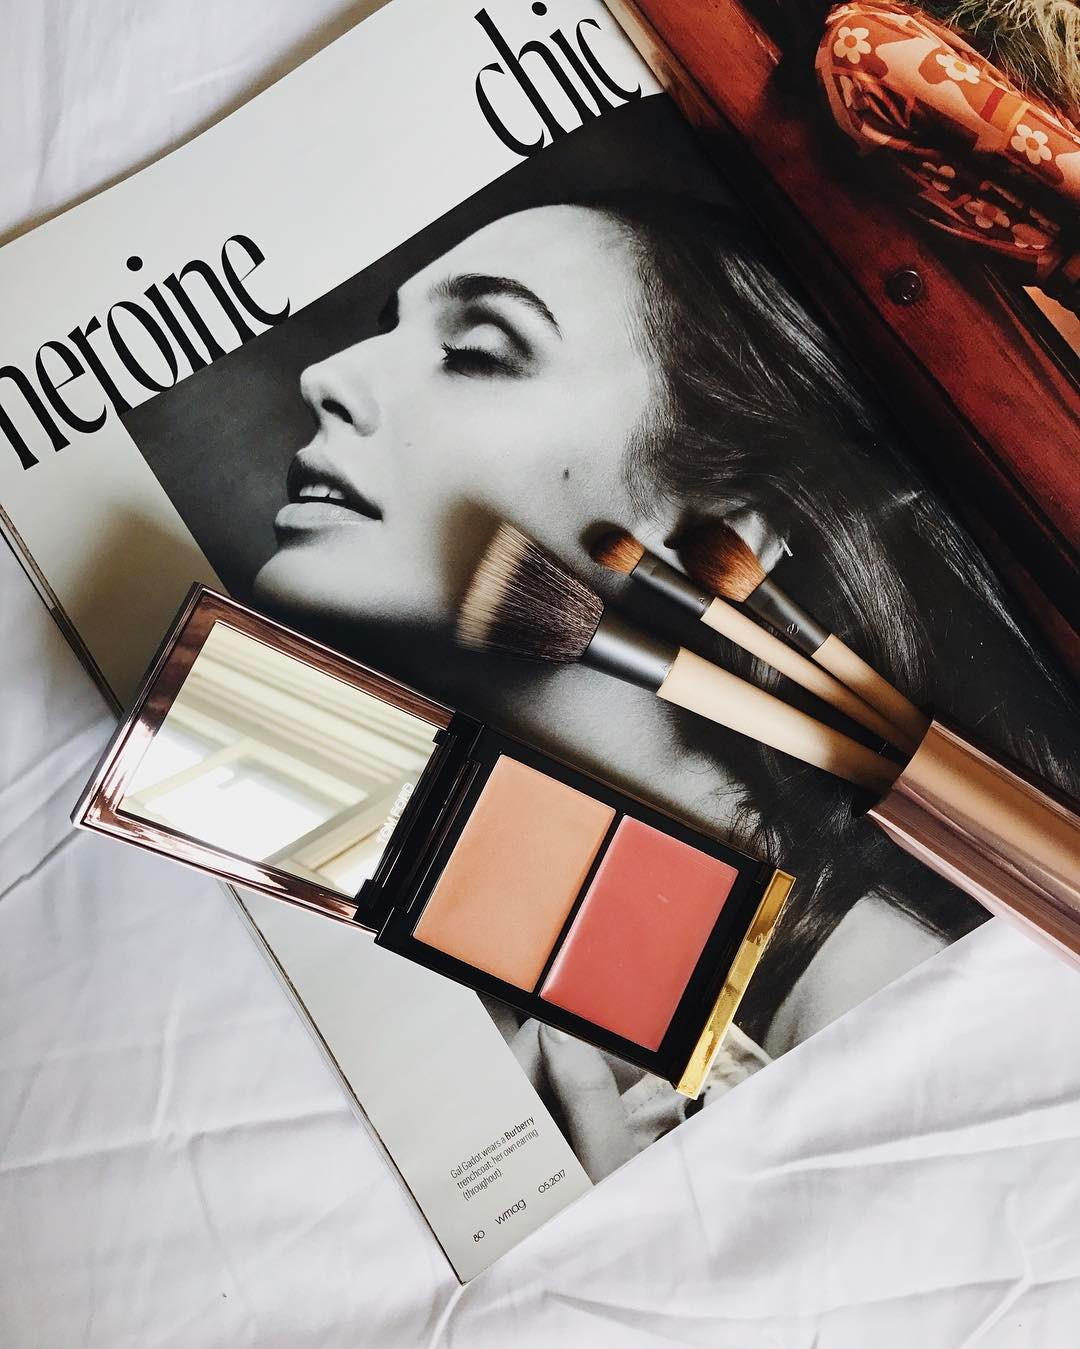 Tom Ford Shade and Illuminate Palette